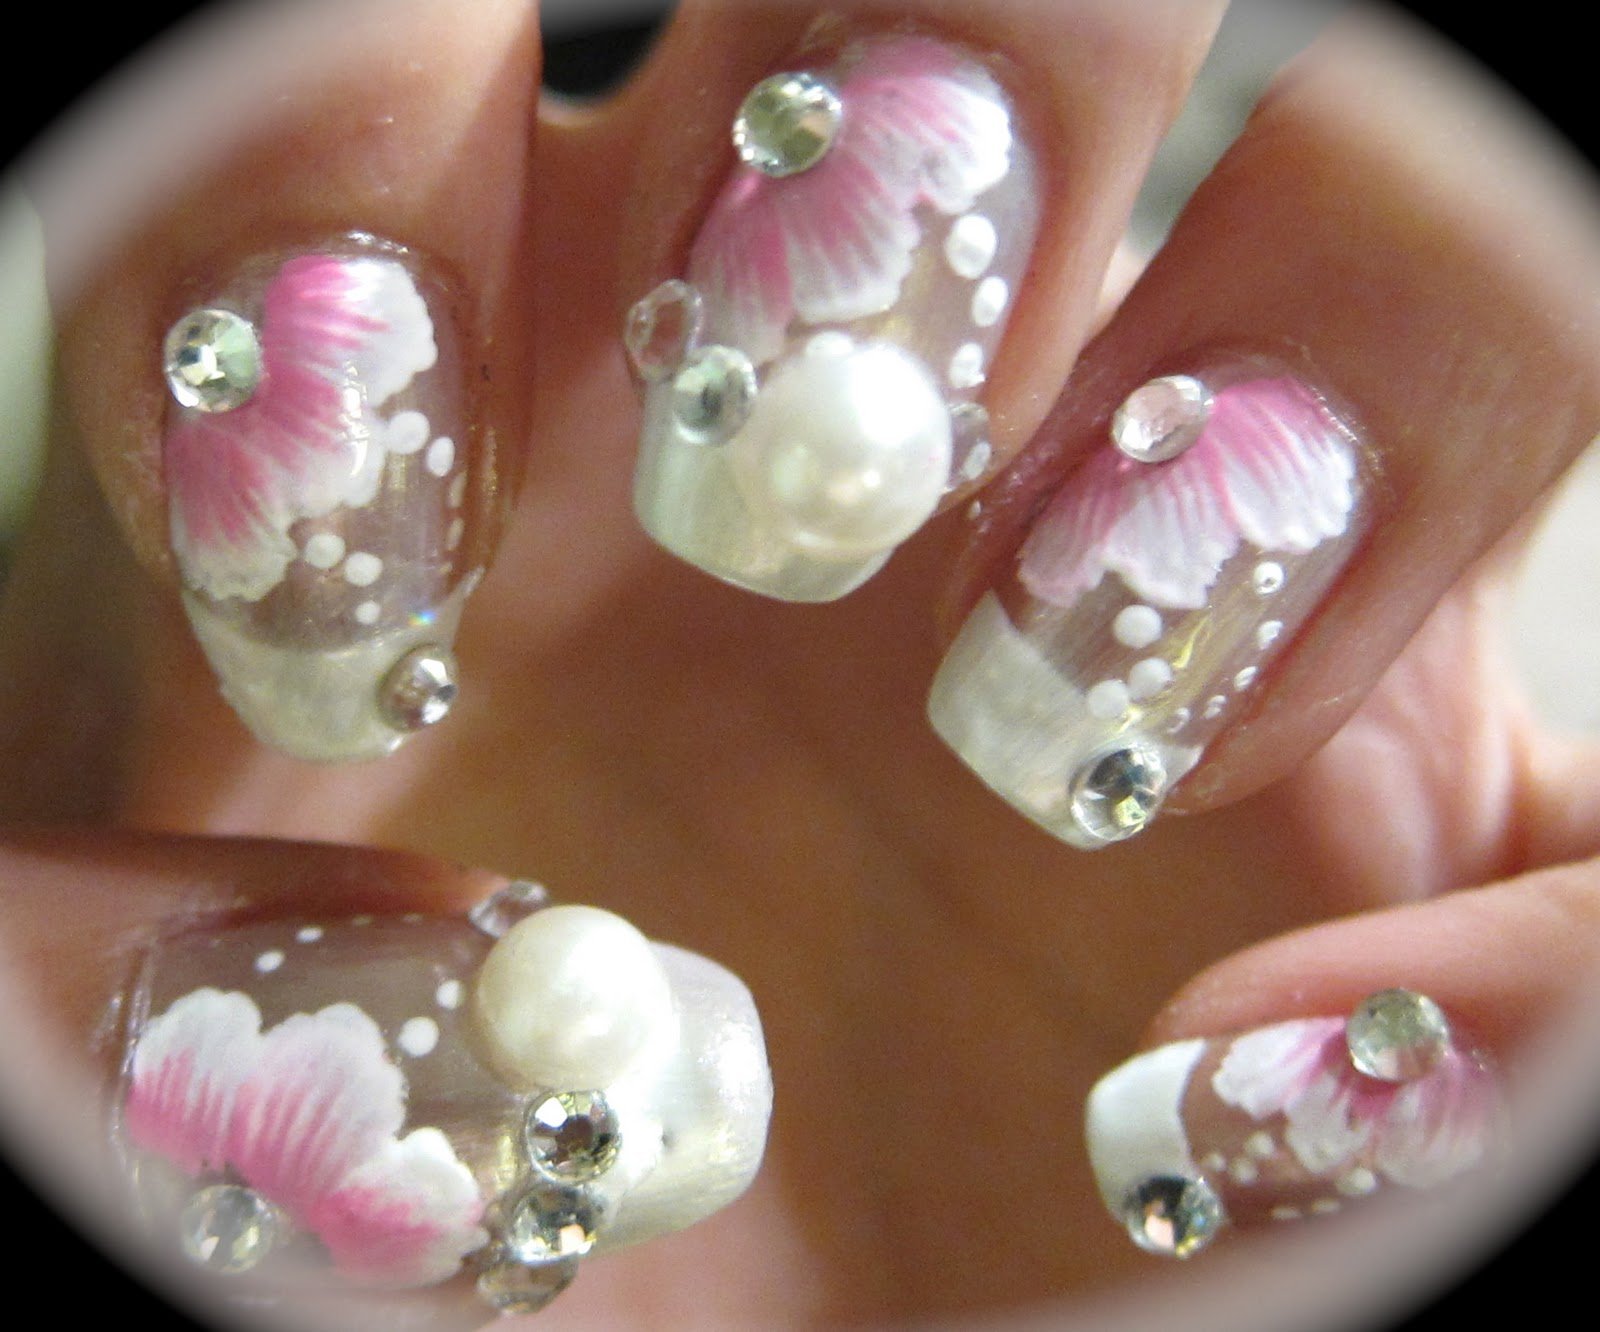 anny-simplichic: Beautiful Wedding Nails with Pearls and Gems